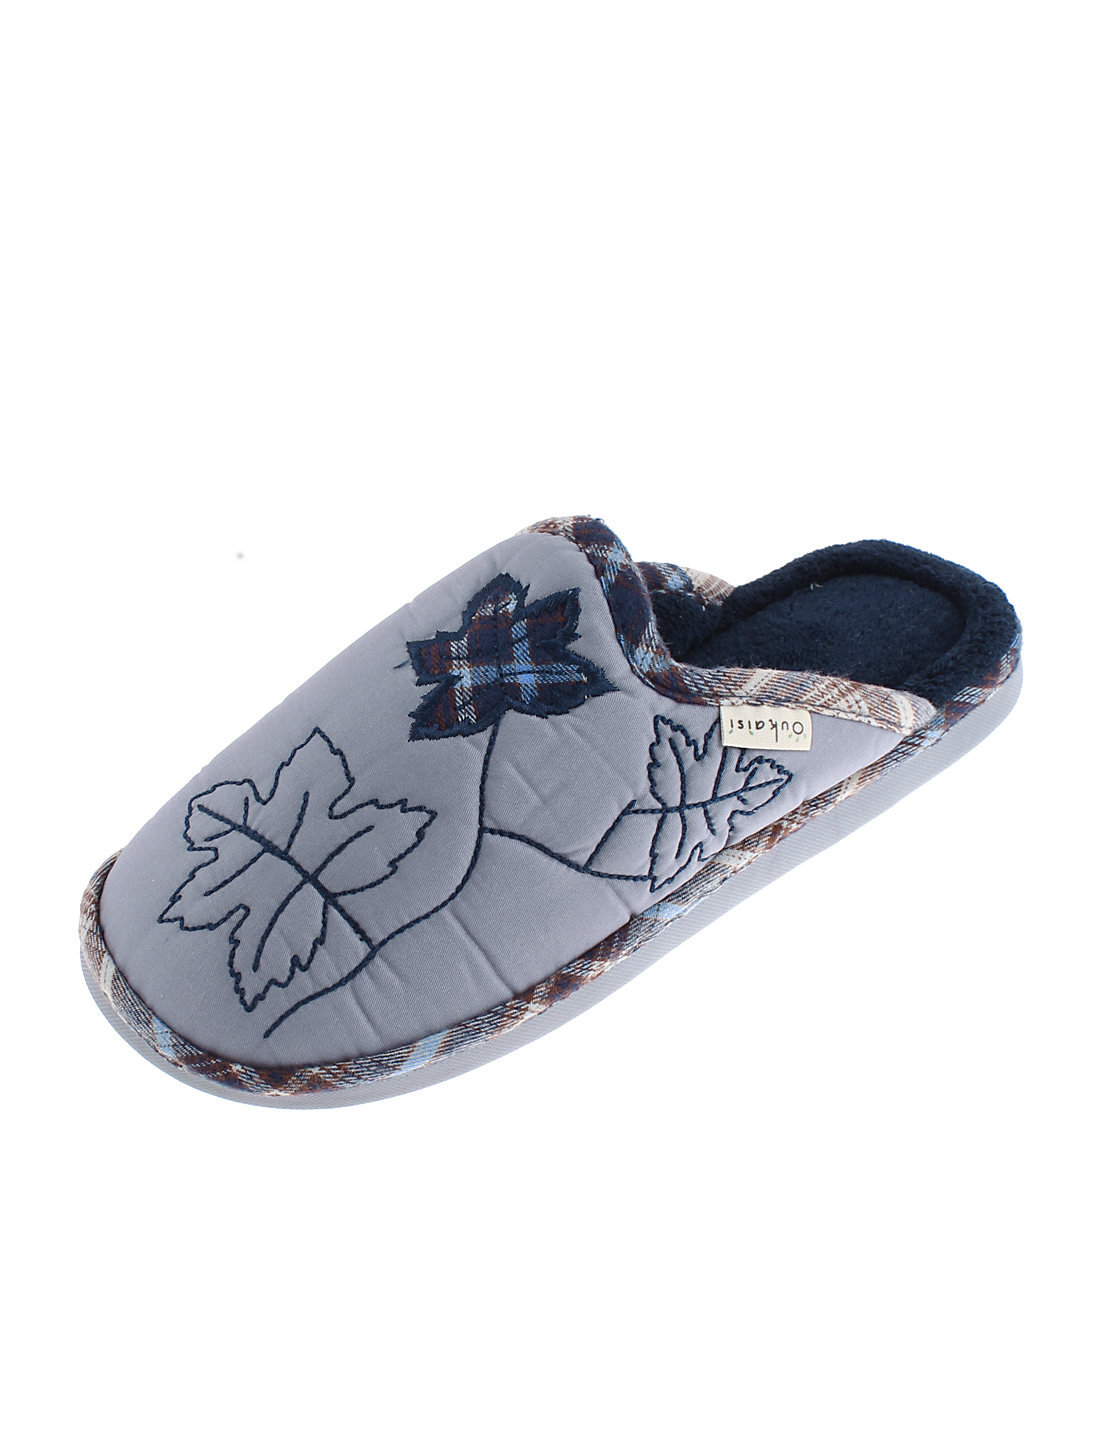 Ladies Maple Leaf Pattern Casual Warmer Cotton Slippers Blue US 9.5